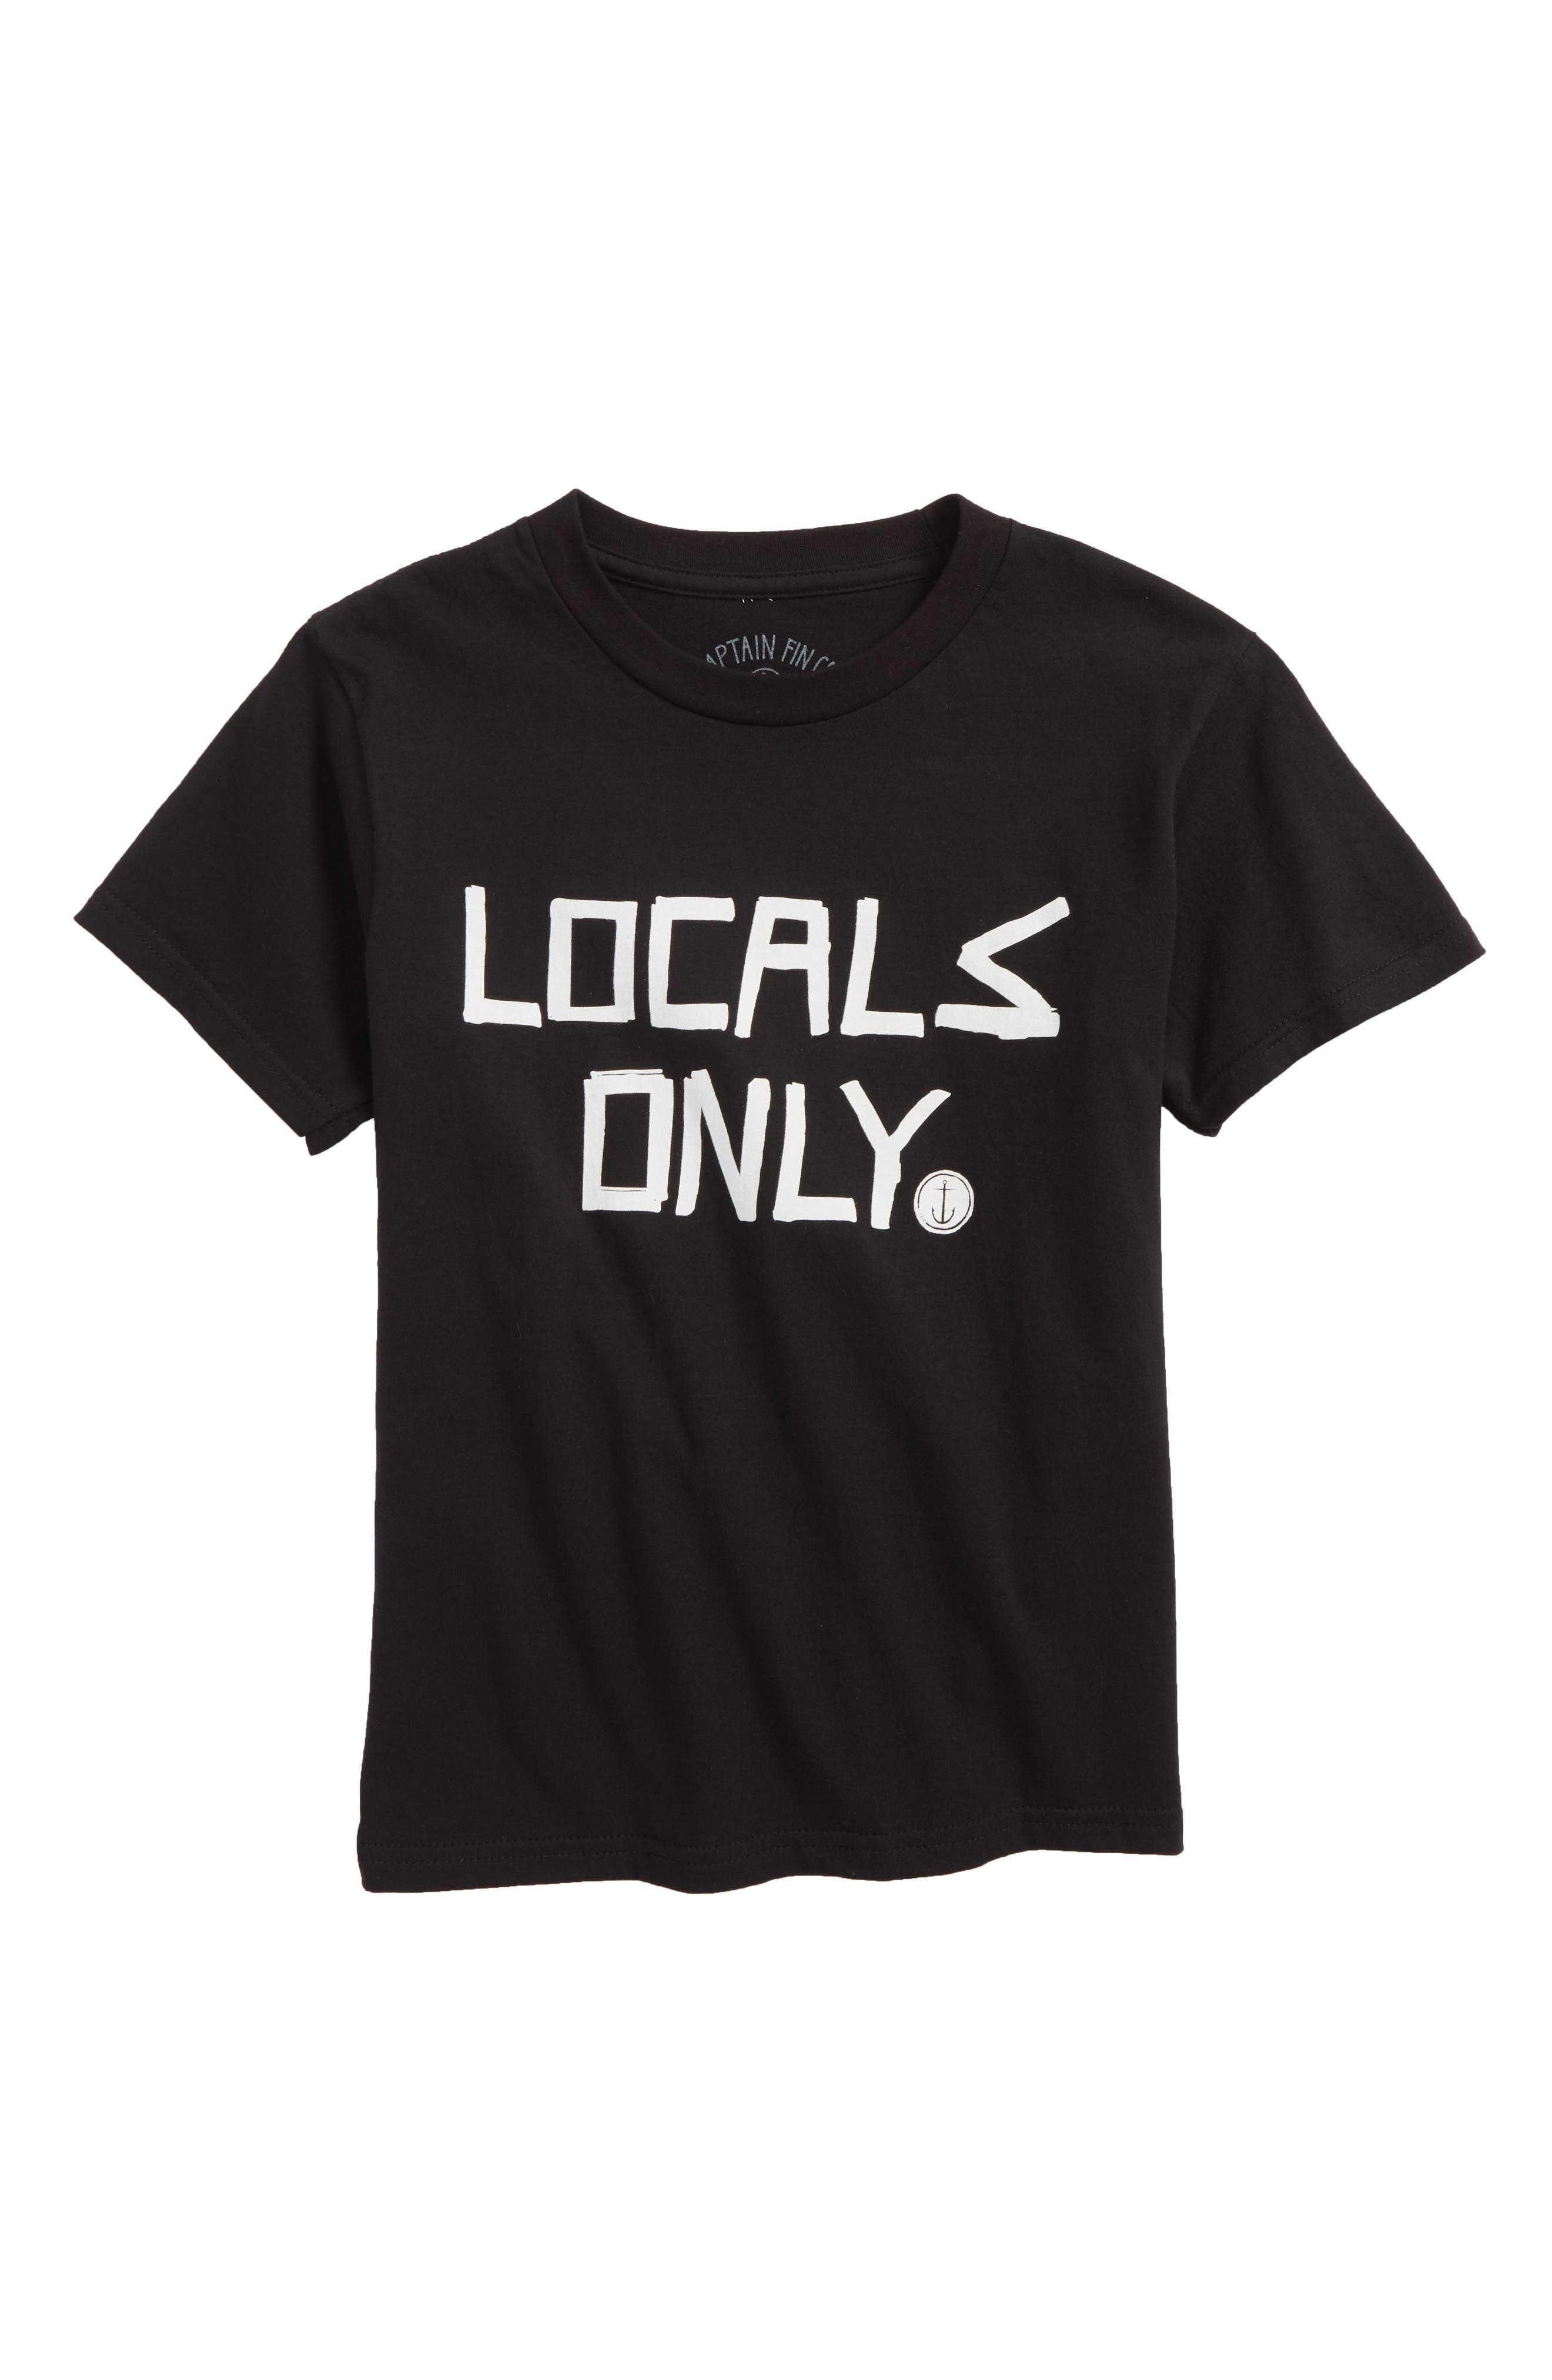 Locals Only T-Shirt,                         Main,                         color, Black